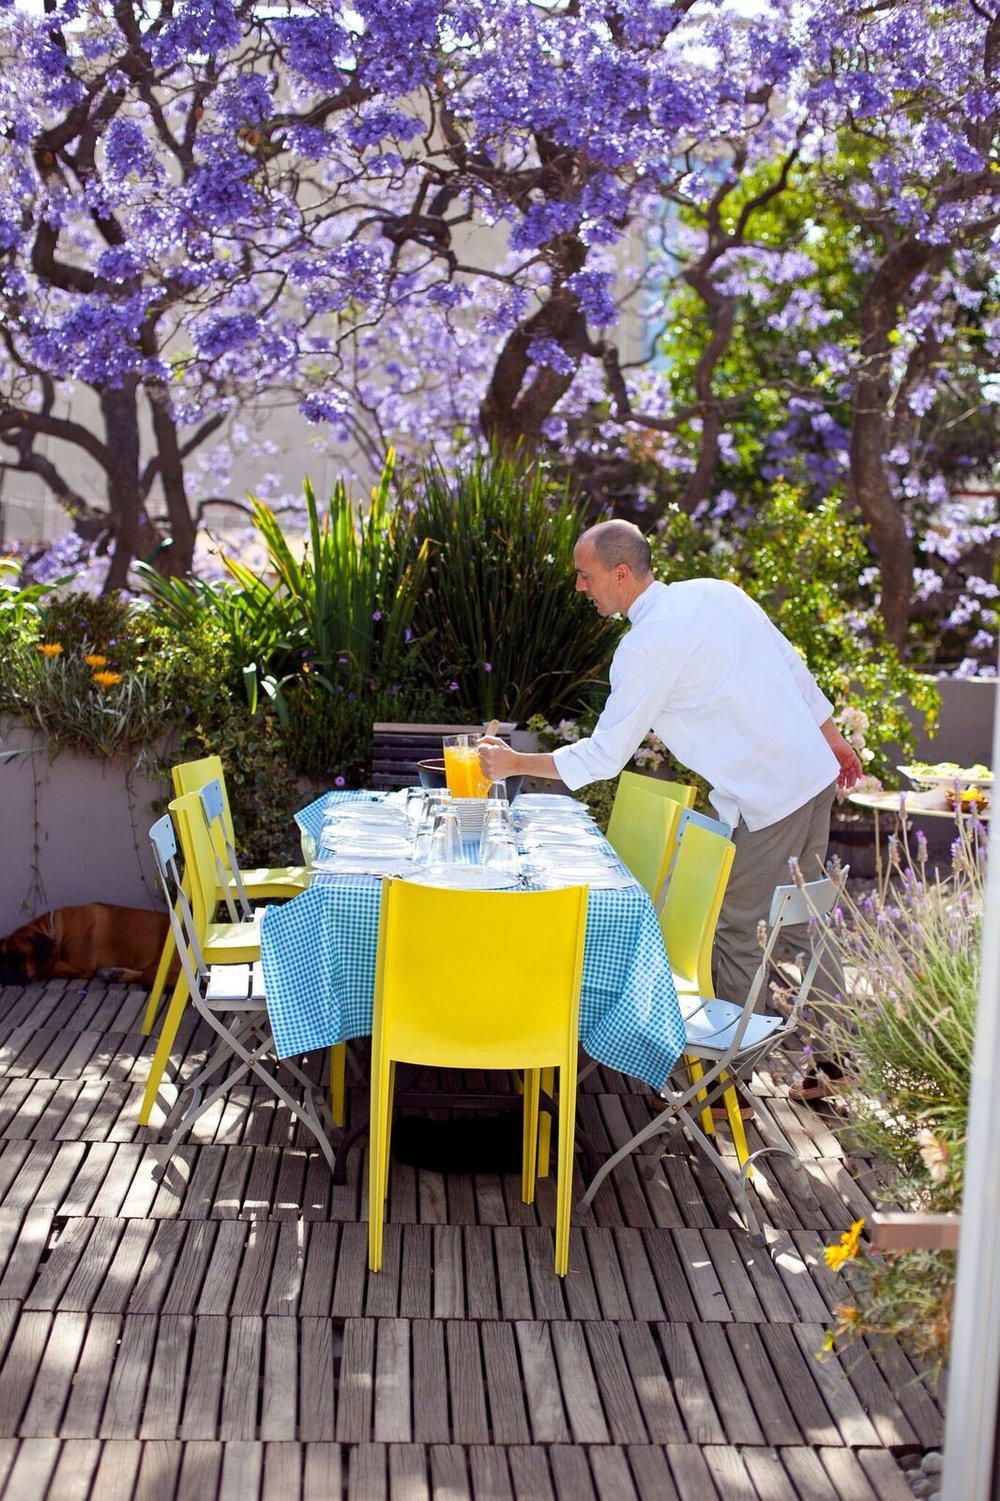 Copy of setting a lunch table beneath a jacaranda tree